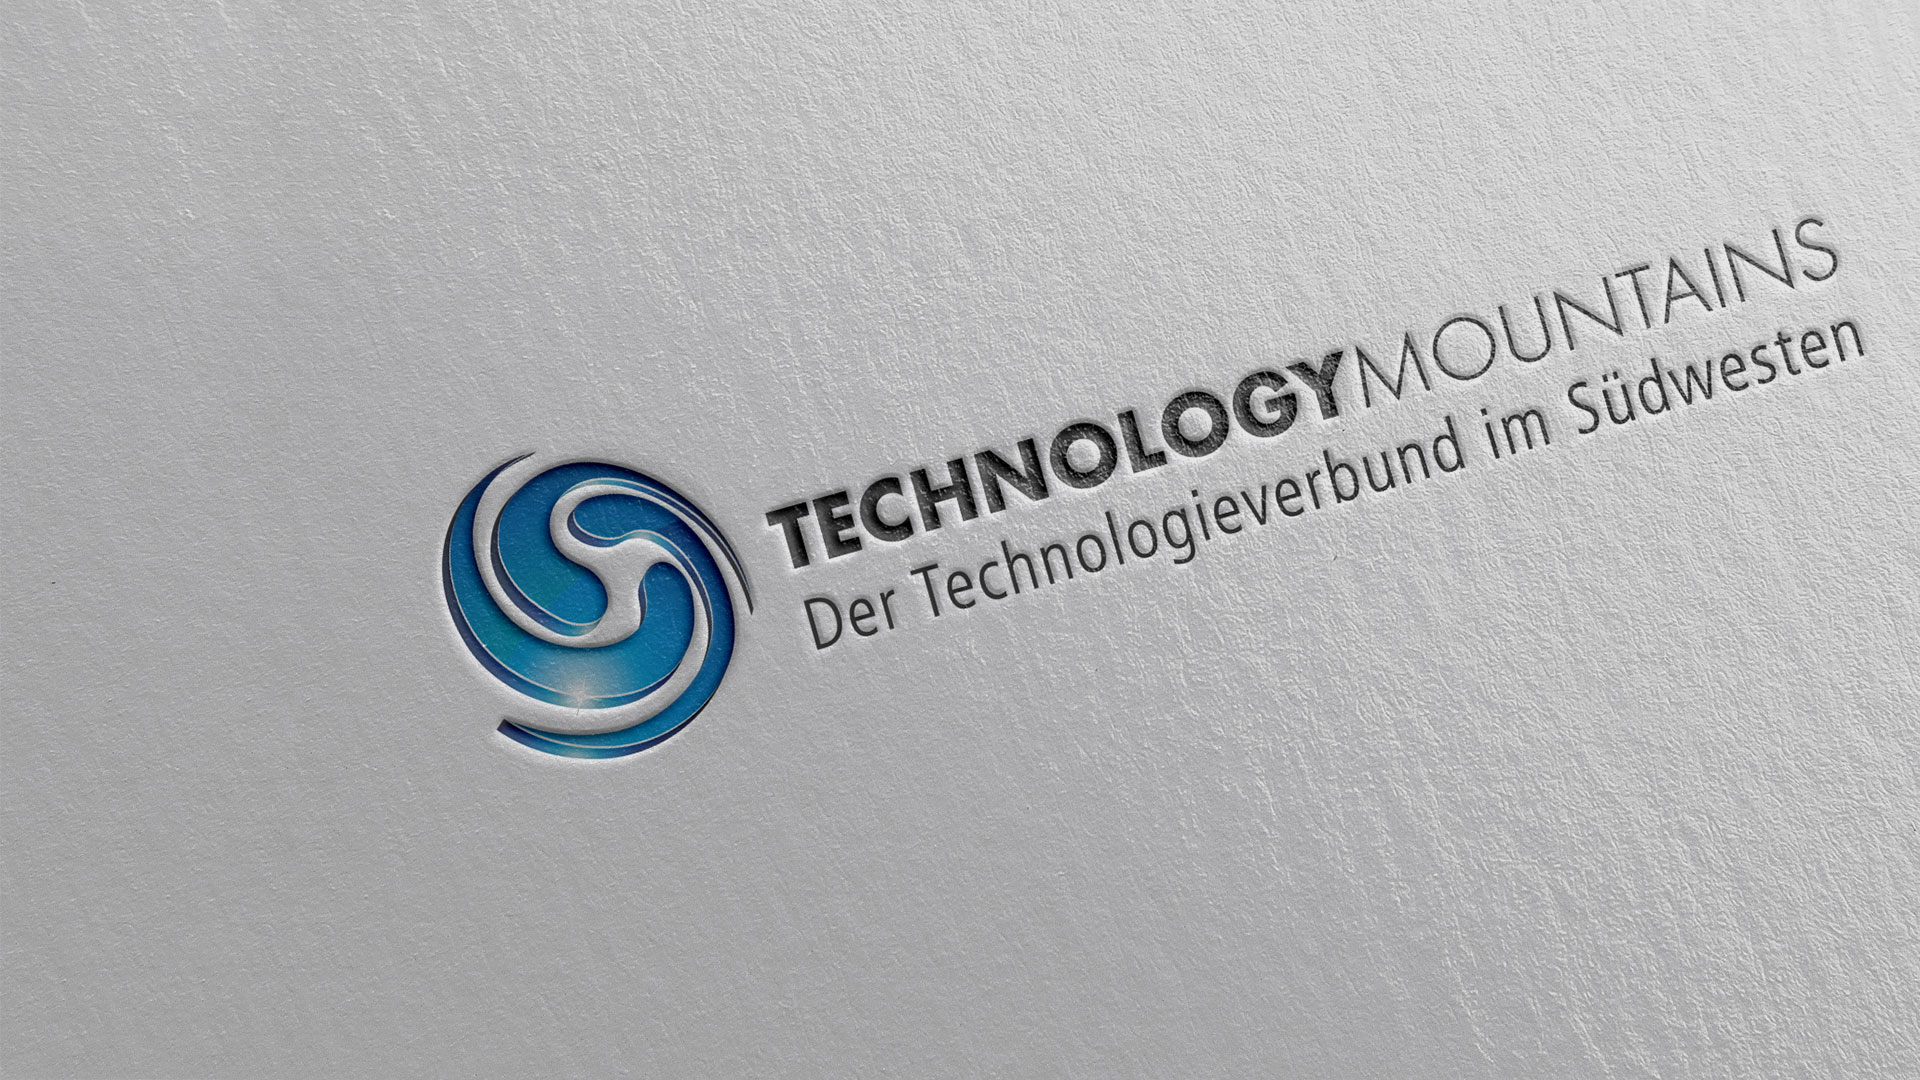 TechnologyMountains, Cluster-Initiative, Technologieverbund